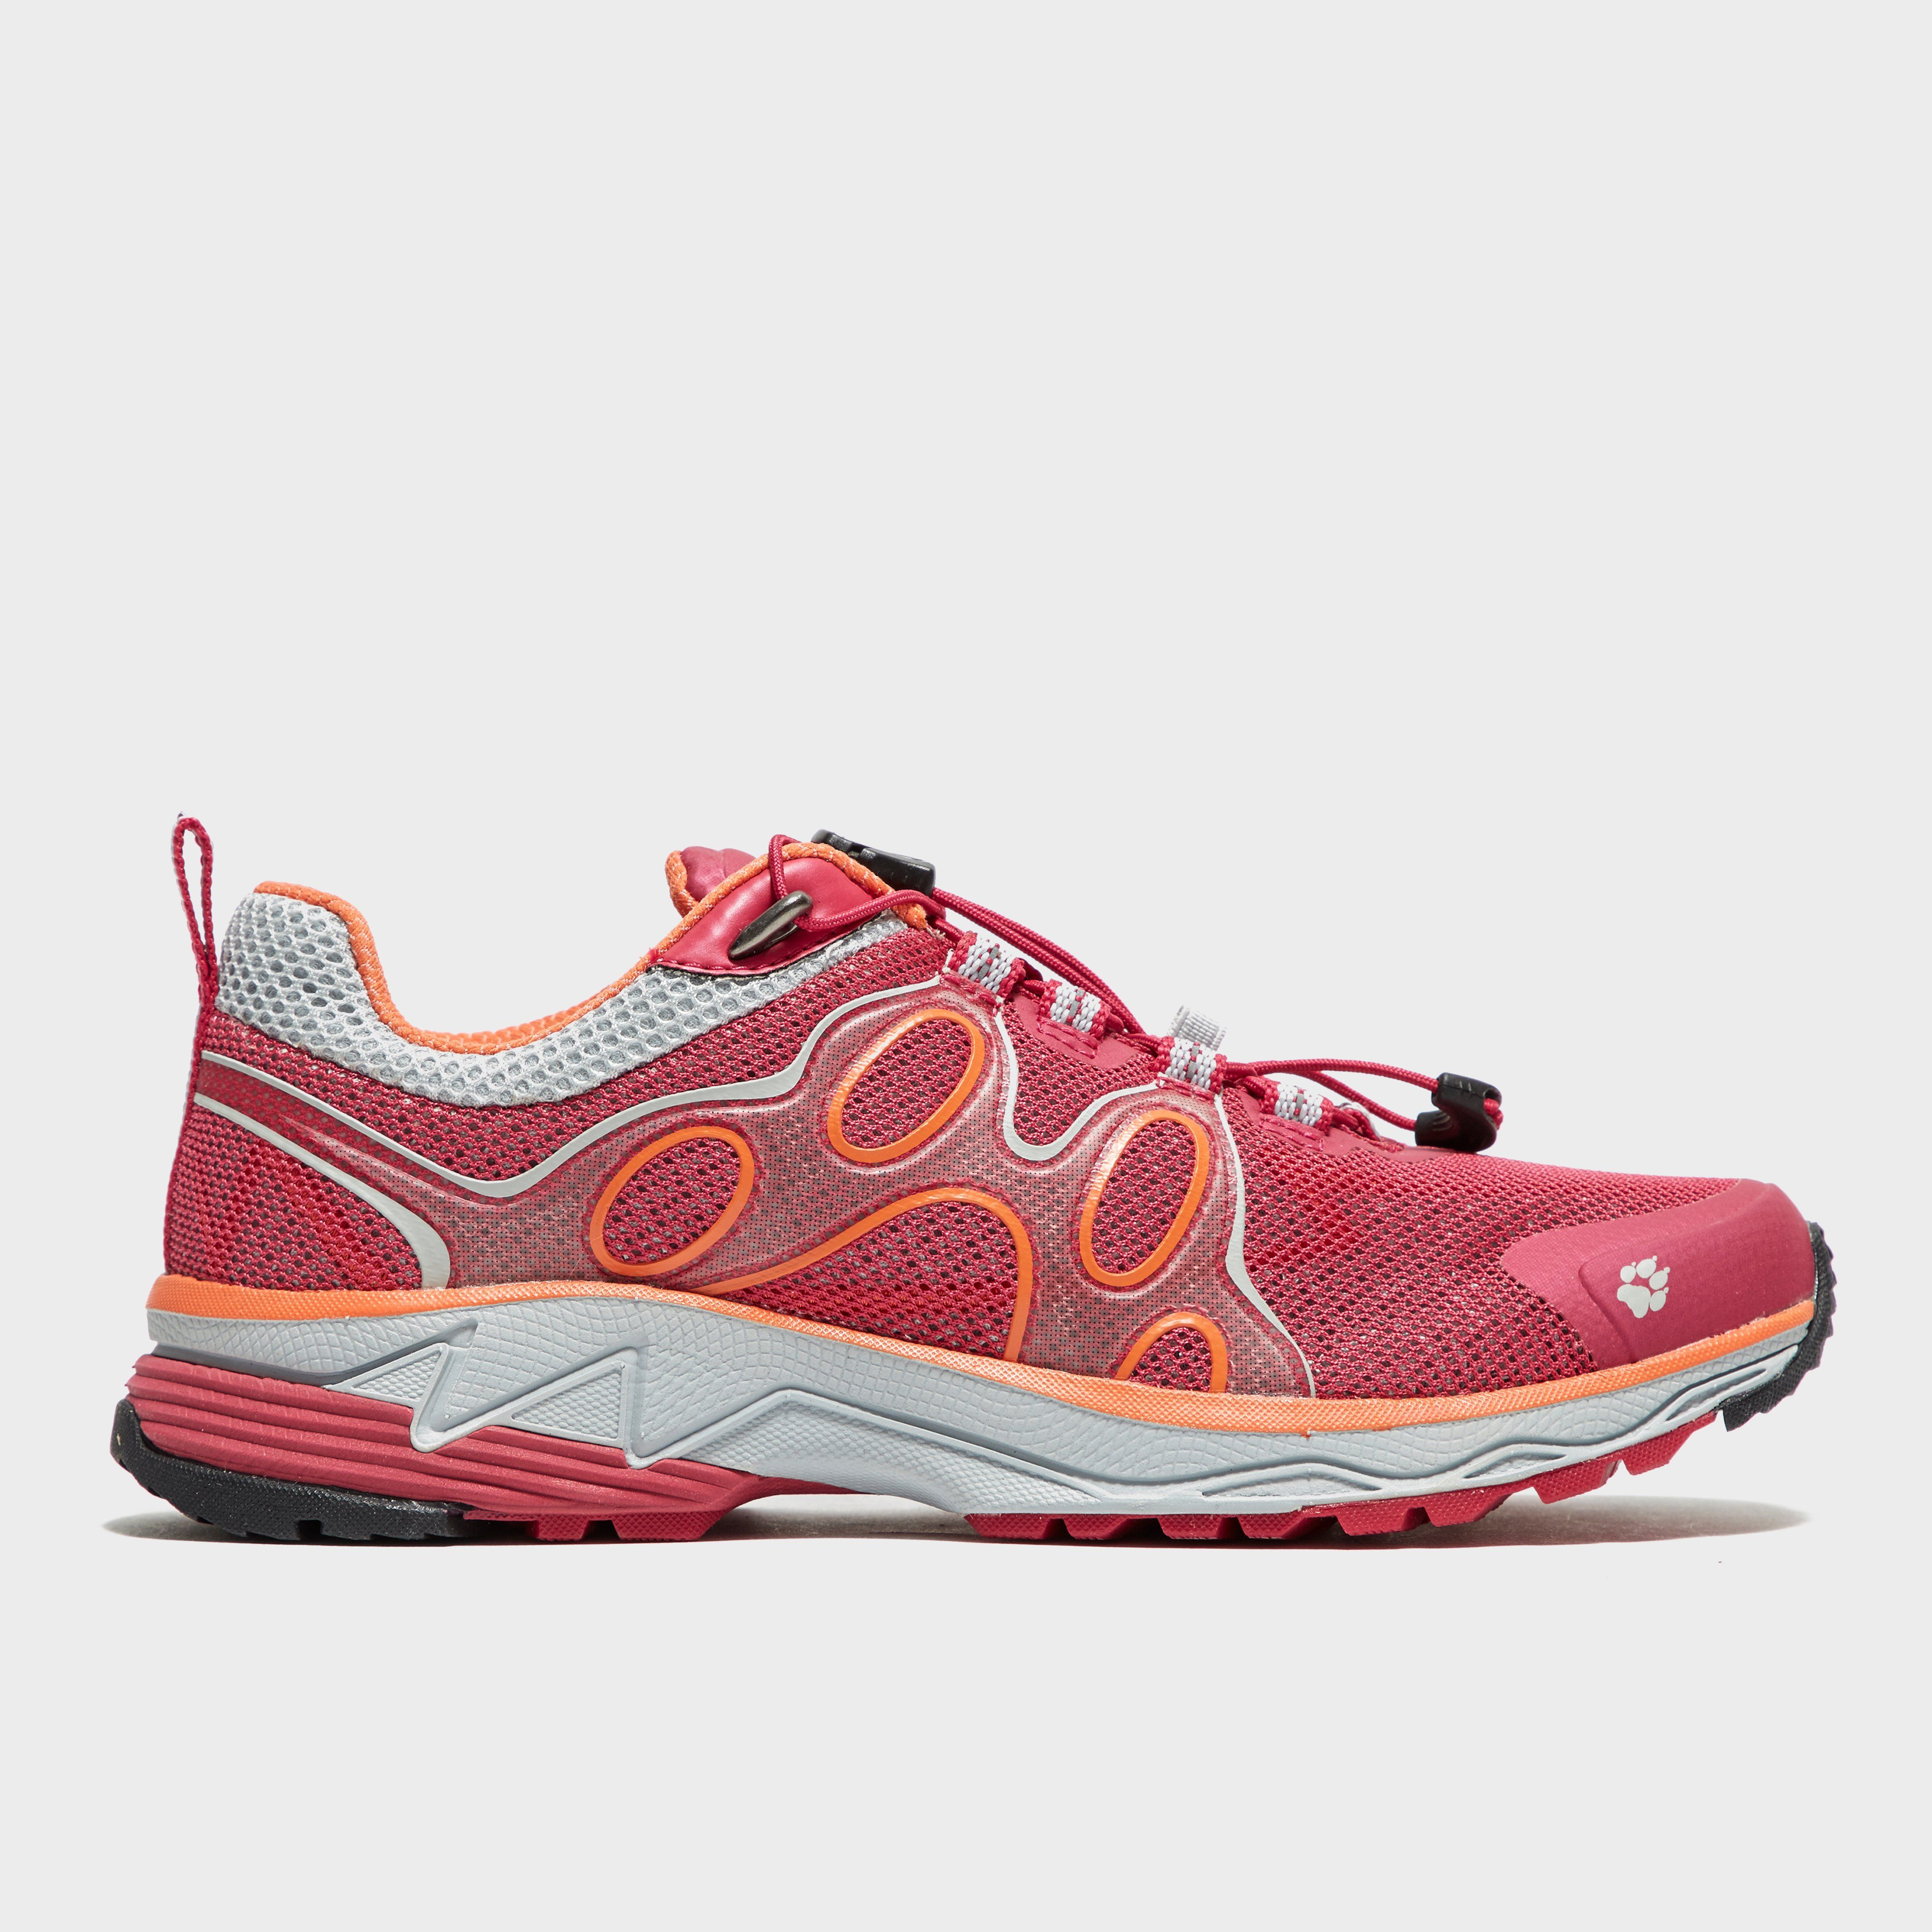 JACK WOLFSKIN Women's Passion Trail Running Shoes